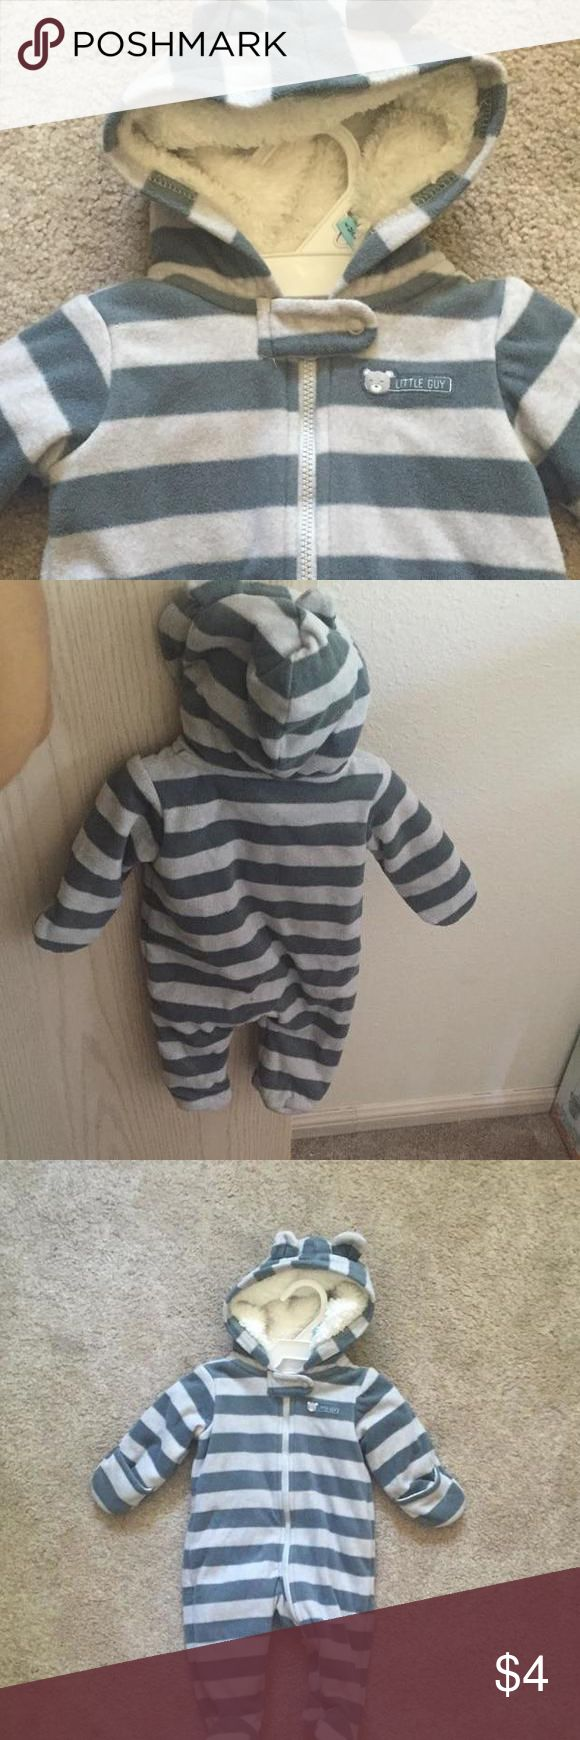 Cozy striped jumpsuit Grey stripes jumpsuit with hood and little ears. Cozy and warm. Carters One Pieces Footies